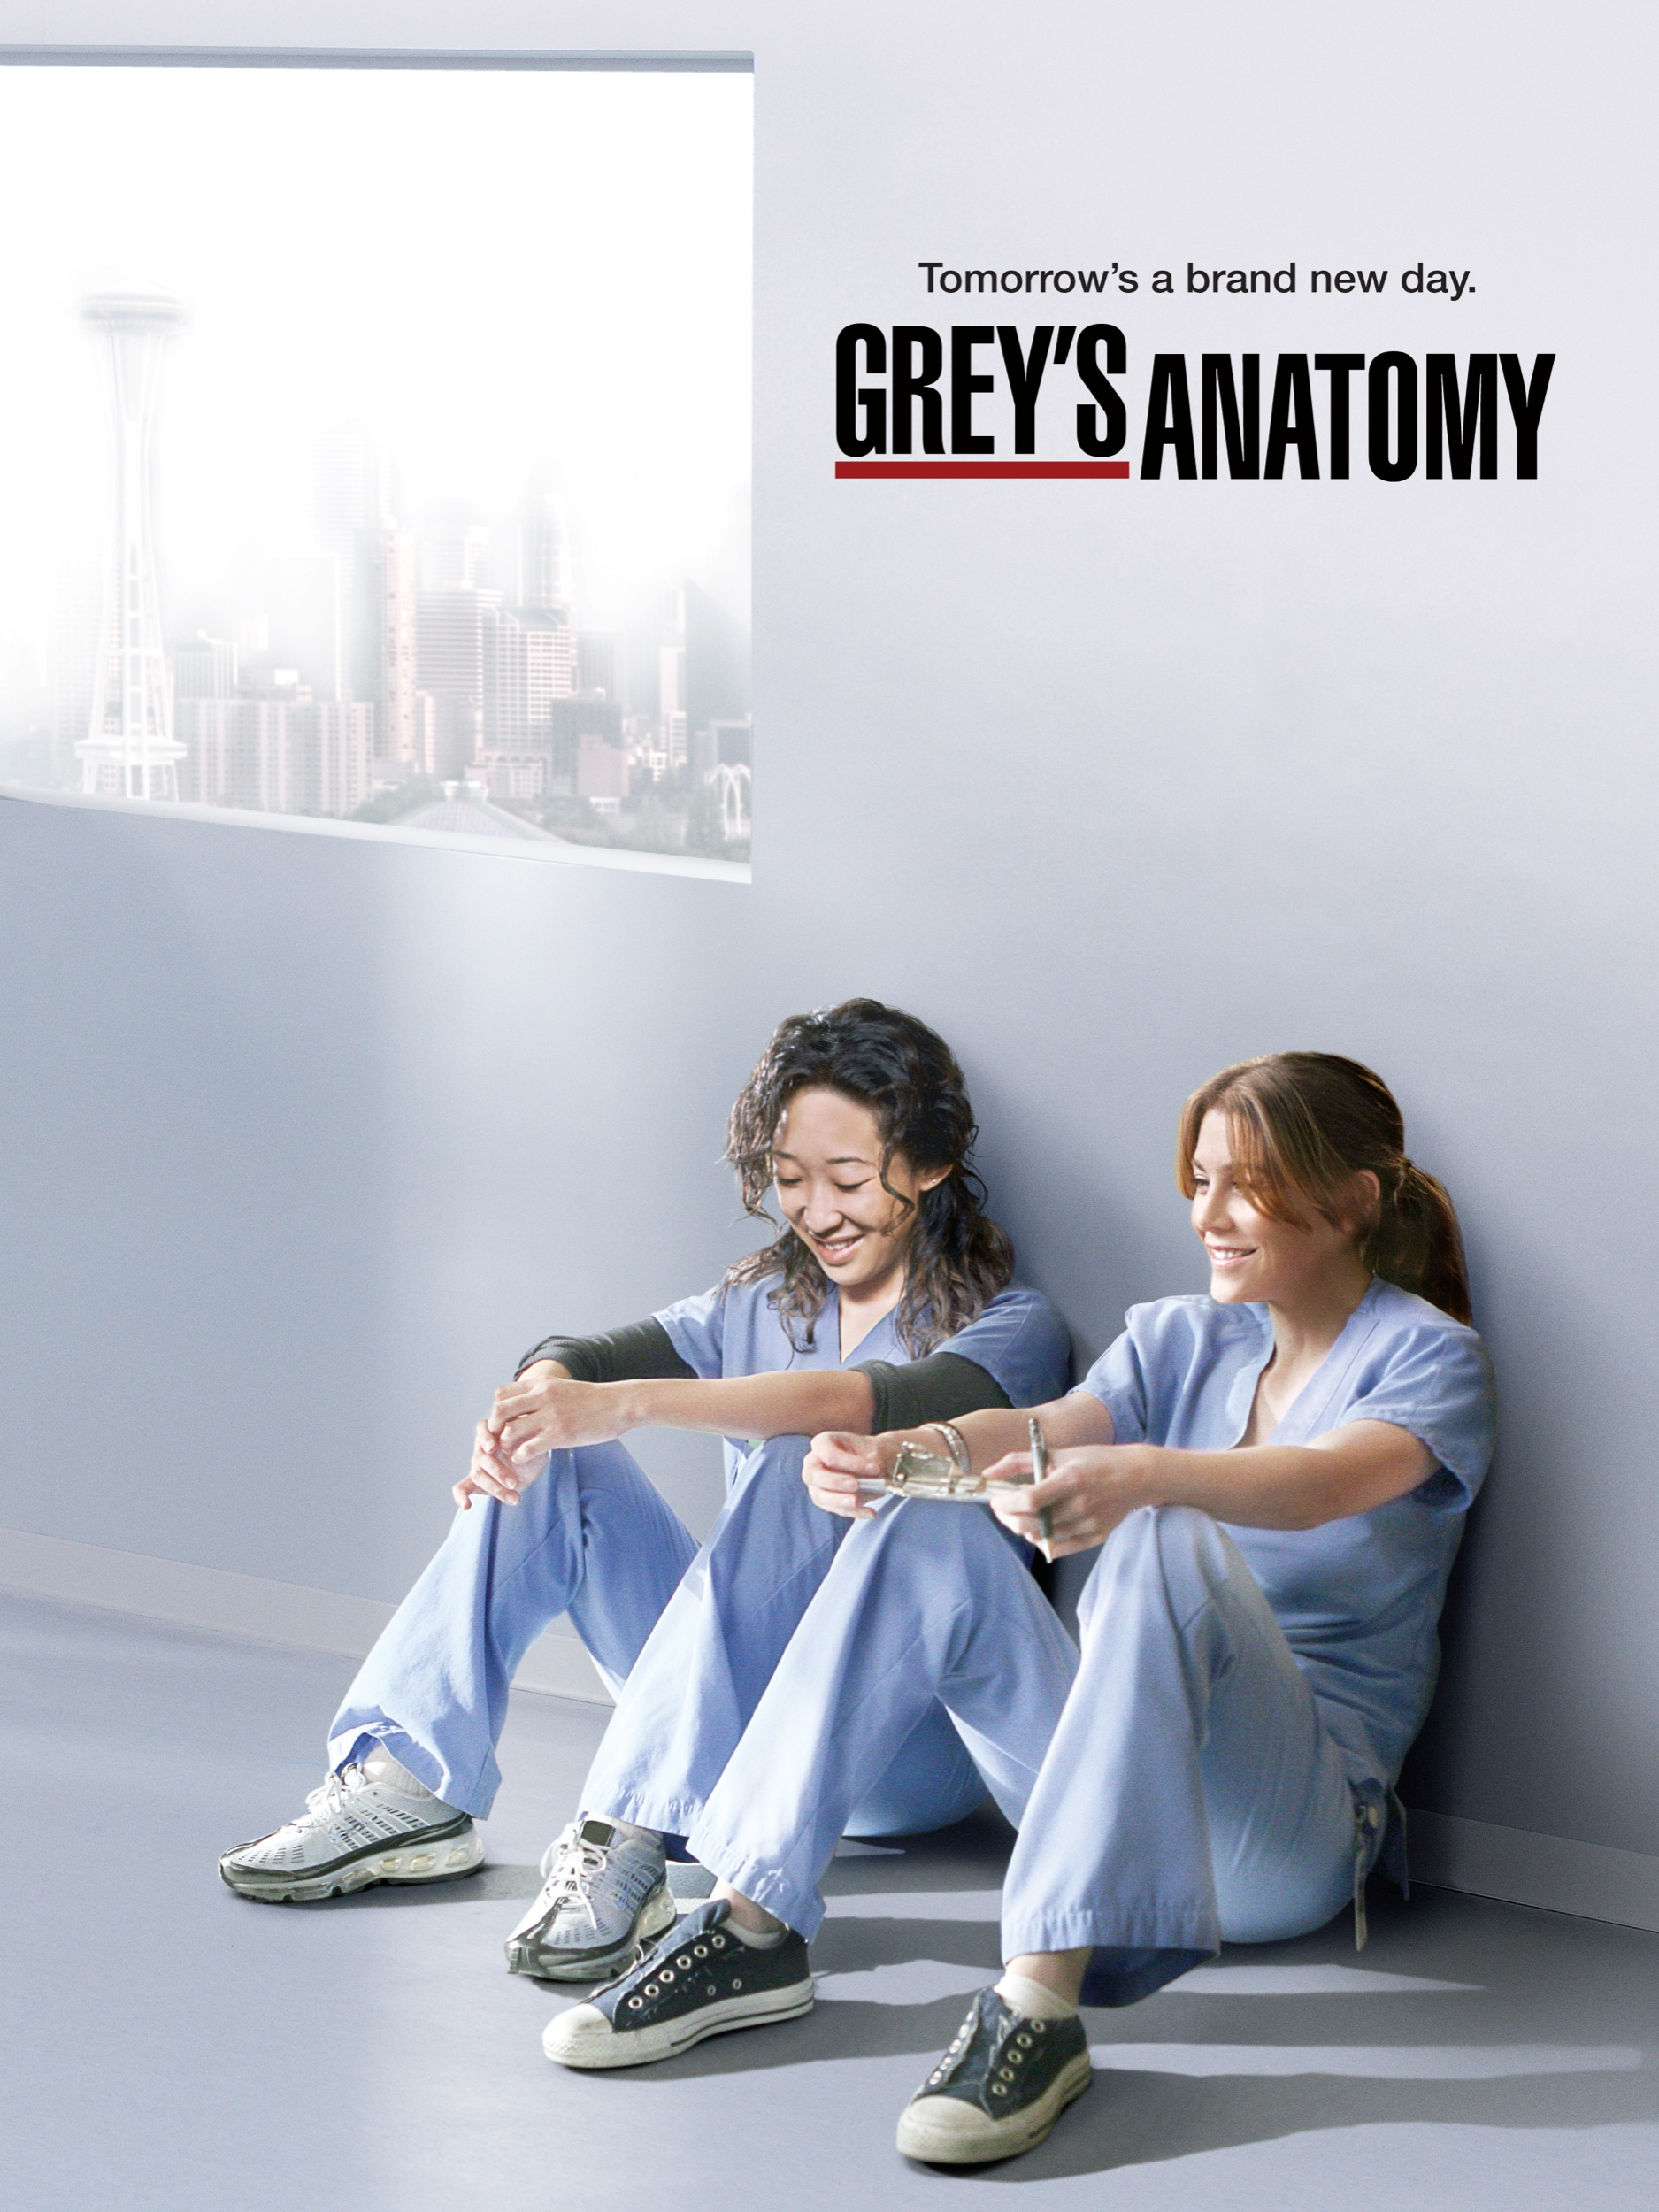 Greys-Anatomy-S08-2-dvdbash | DVDbash